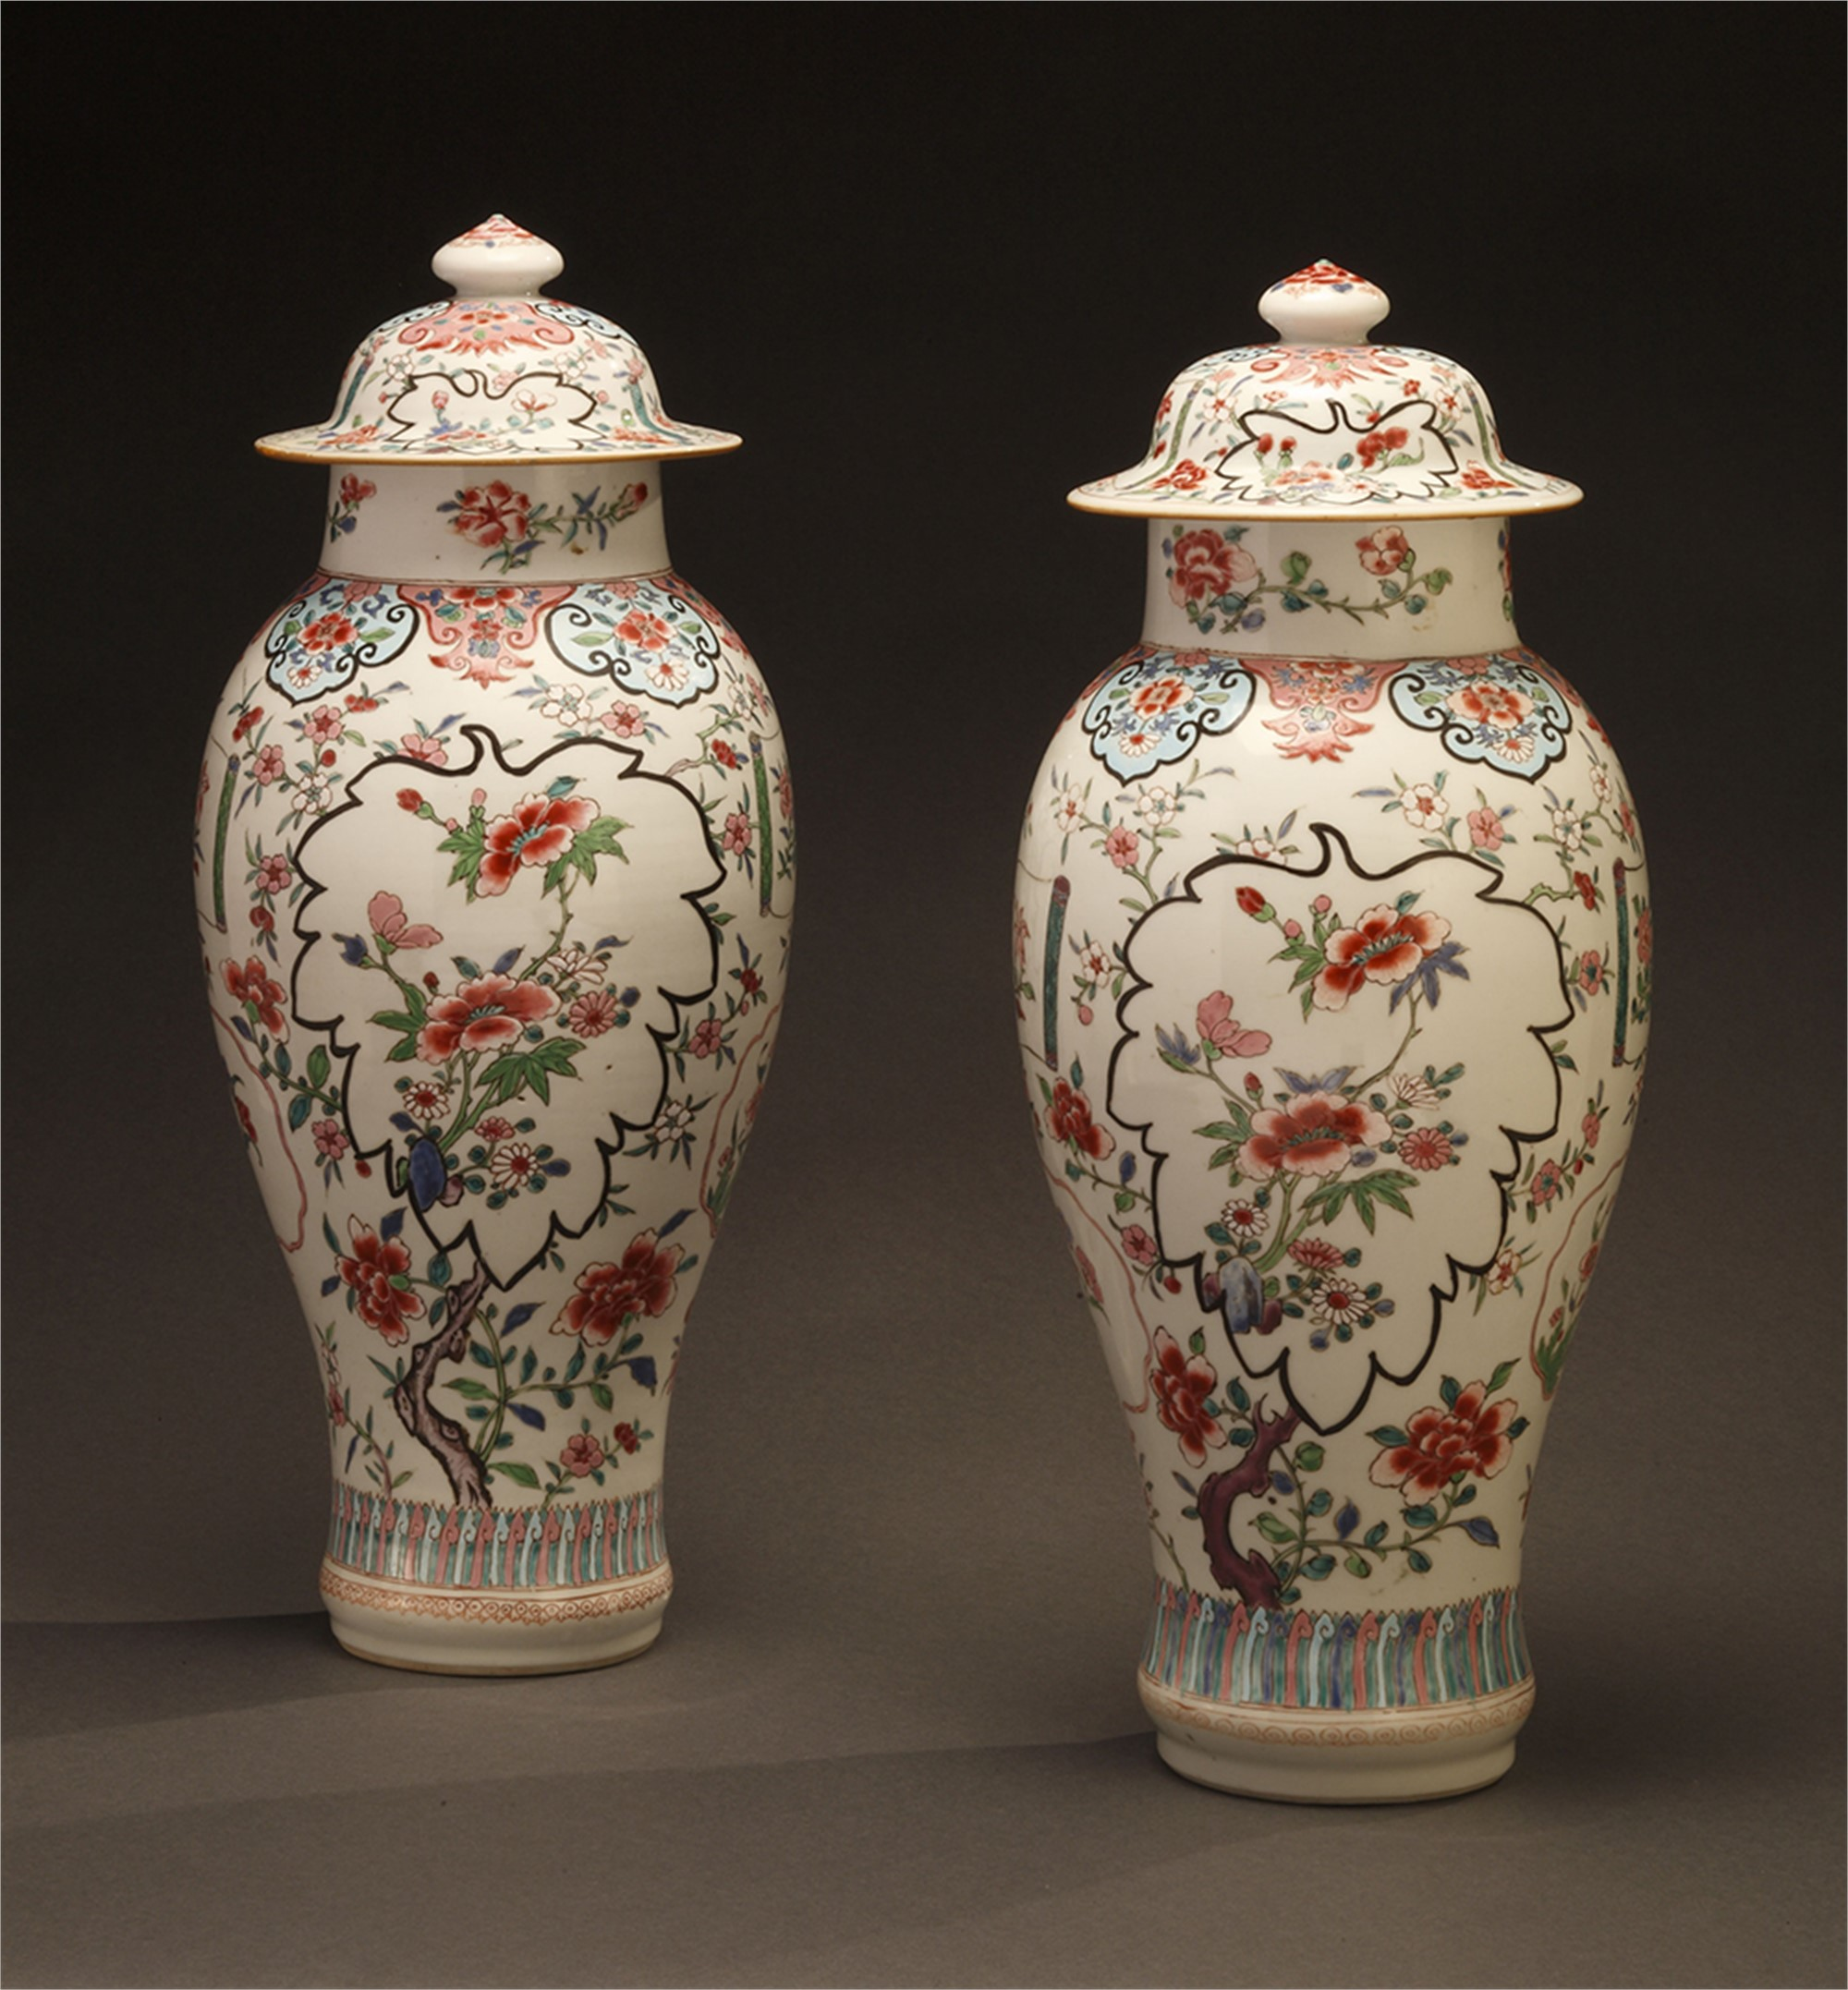 PAIR OF FAMILLE ROSE VASES AND COVERS